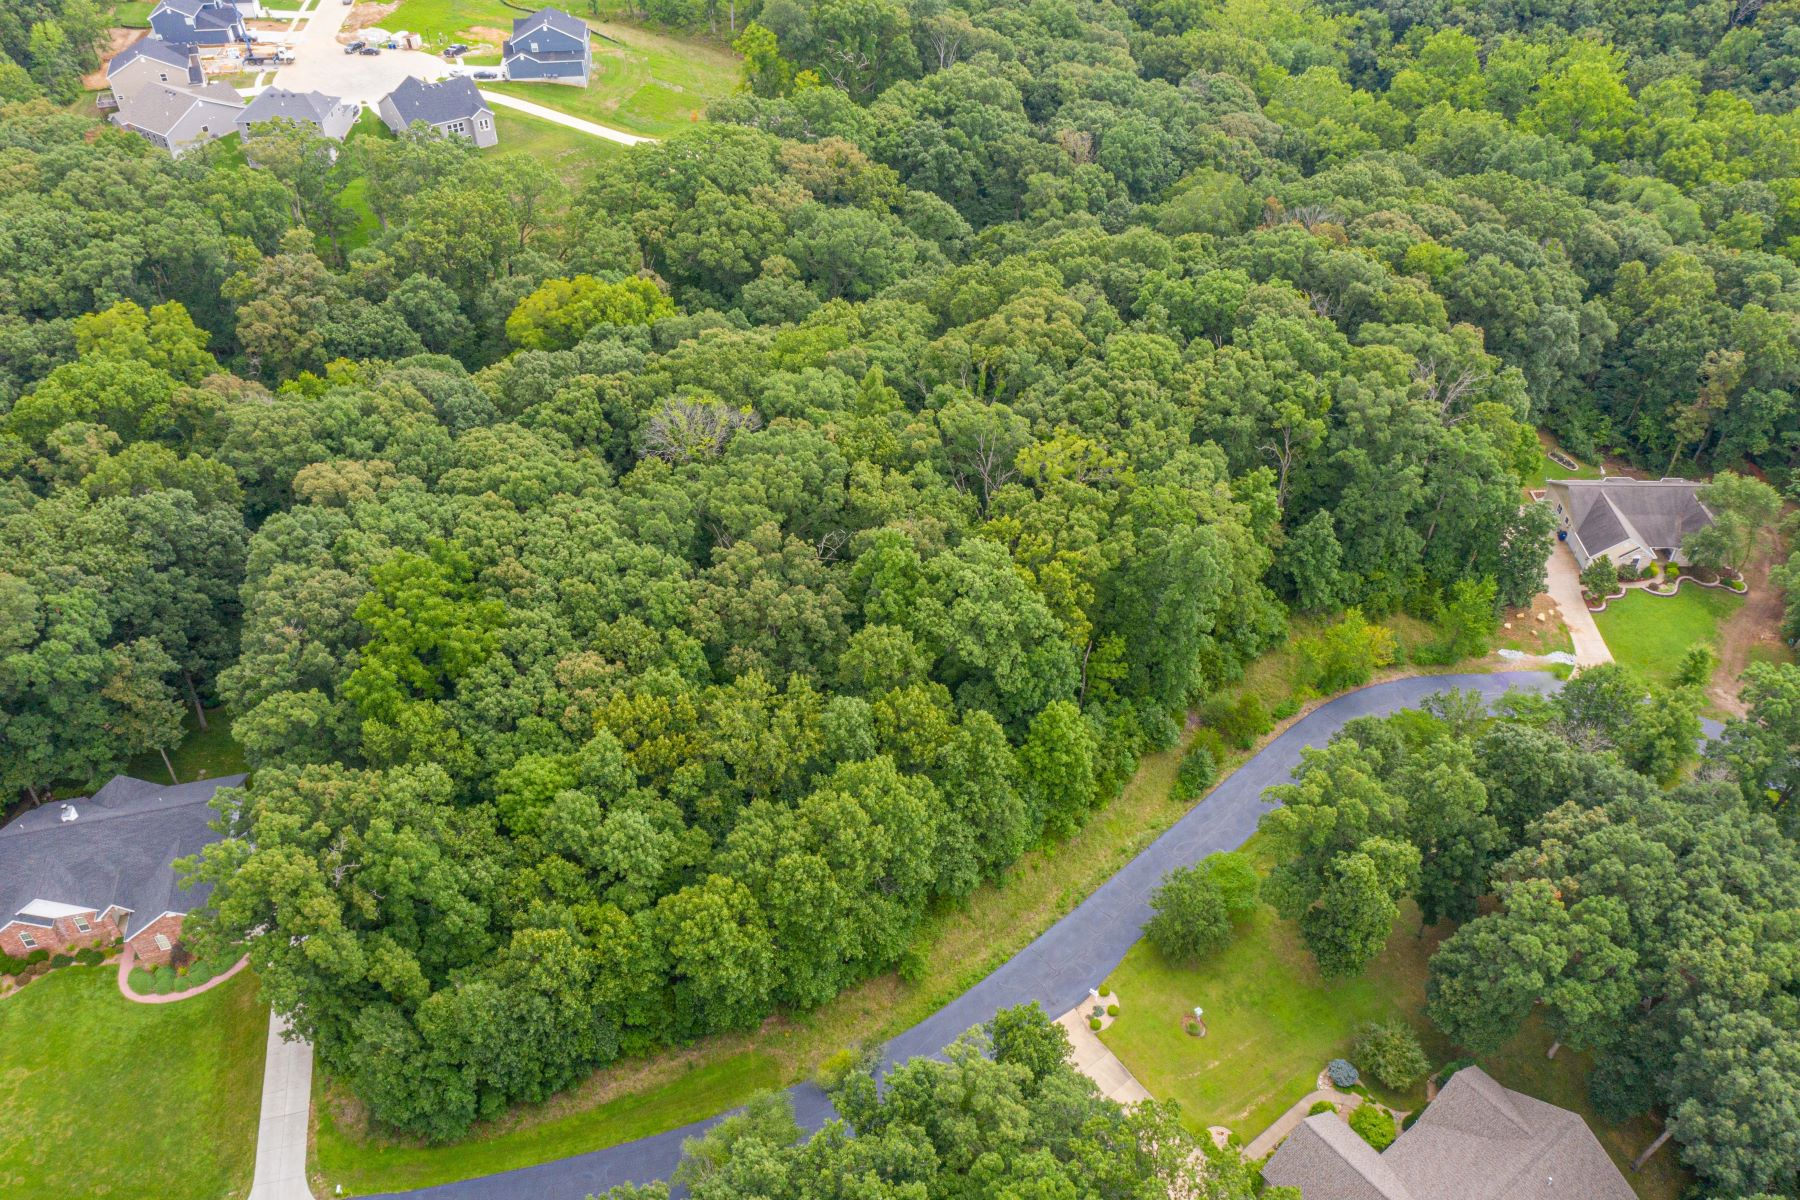 Land for Sale at Breathtaking Wooded 3 Acre Lot 305 Walnut Forest Drive O Fallon, Missouri 63366 United States